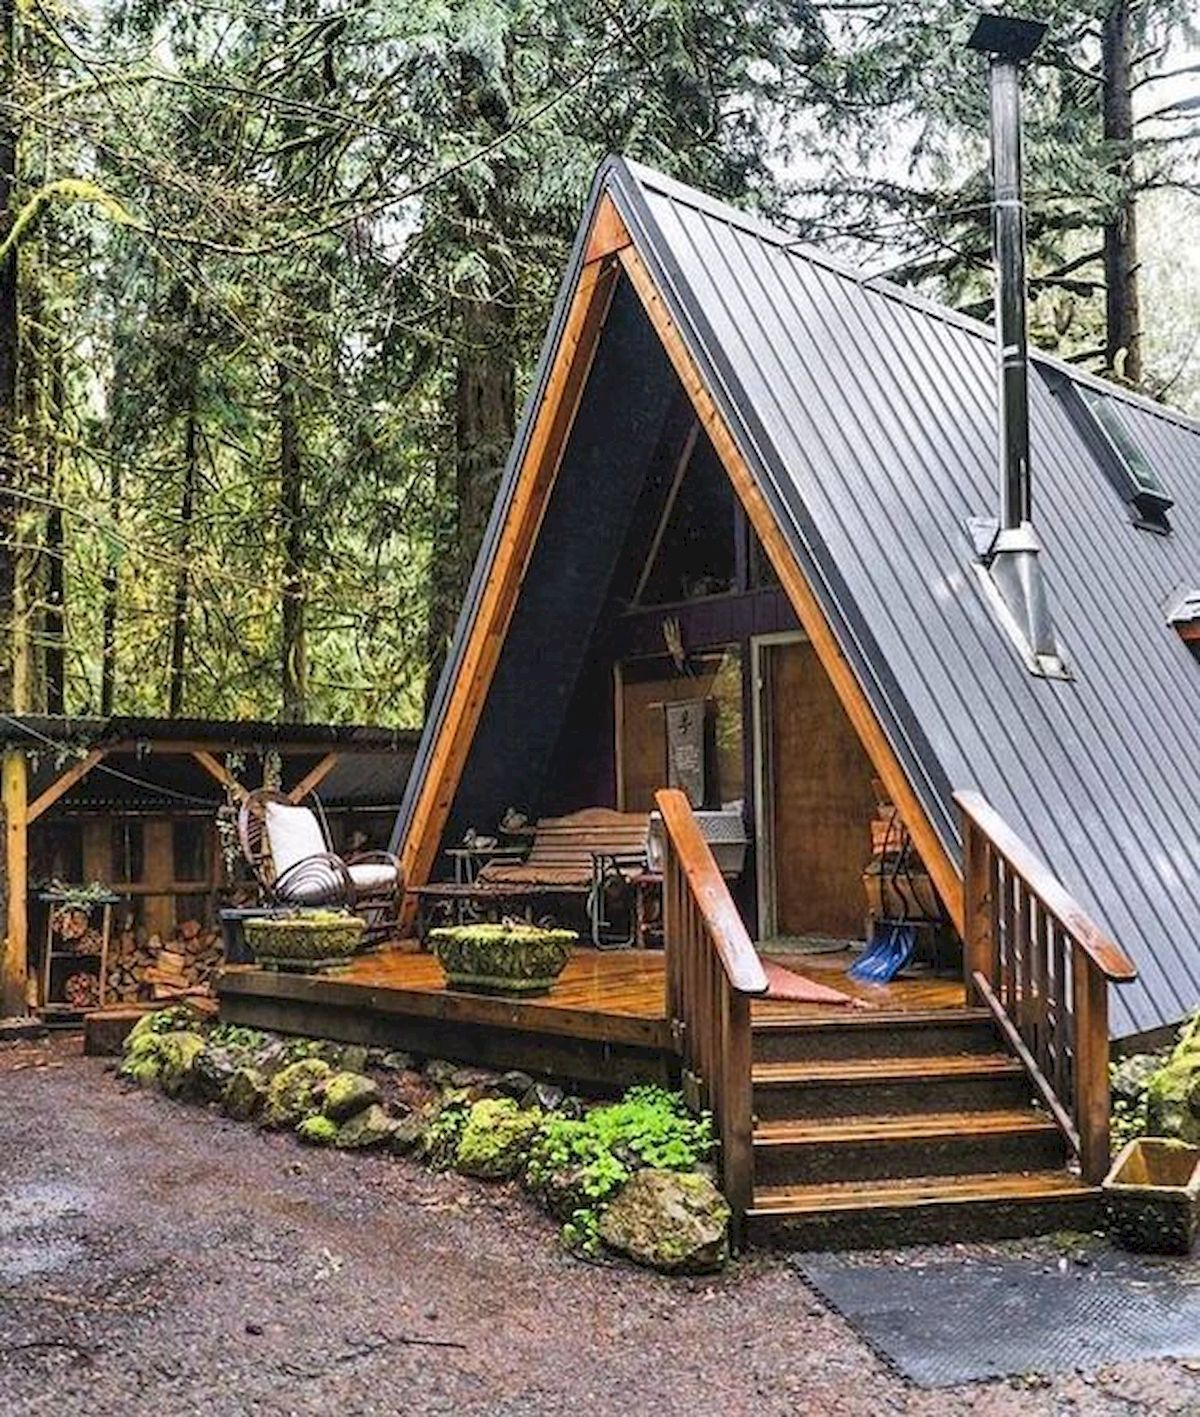 Trailer Home Designs Ideas Currently Permit S Find 20 Impressive Minimalist Houses Design Each One As In 2020 Building A Tiny House Small Log Cabin Log Cabin Homes